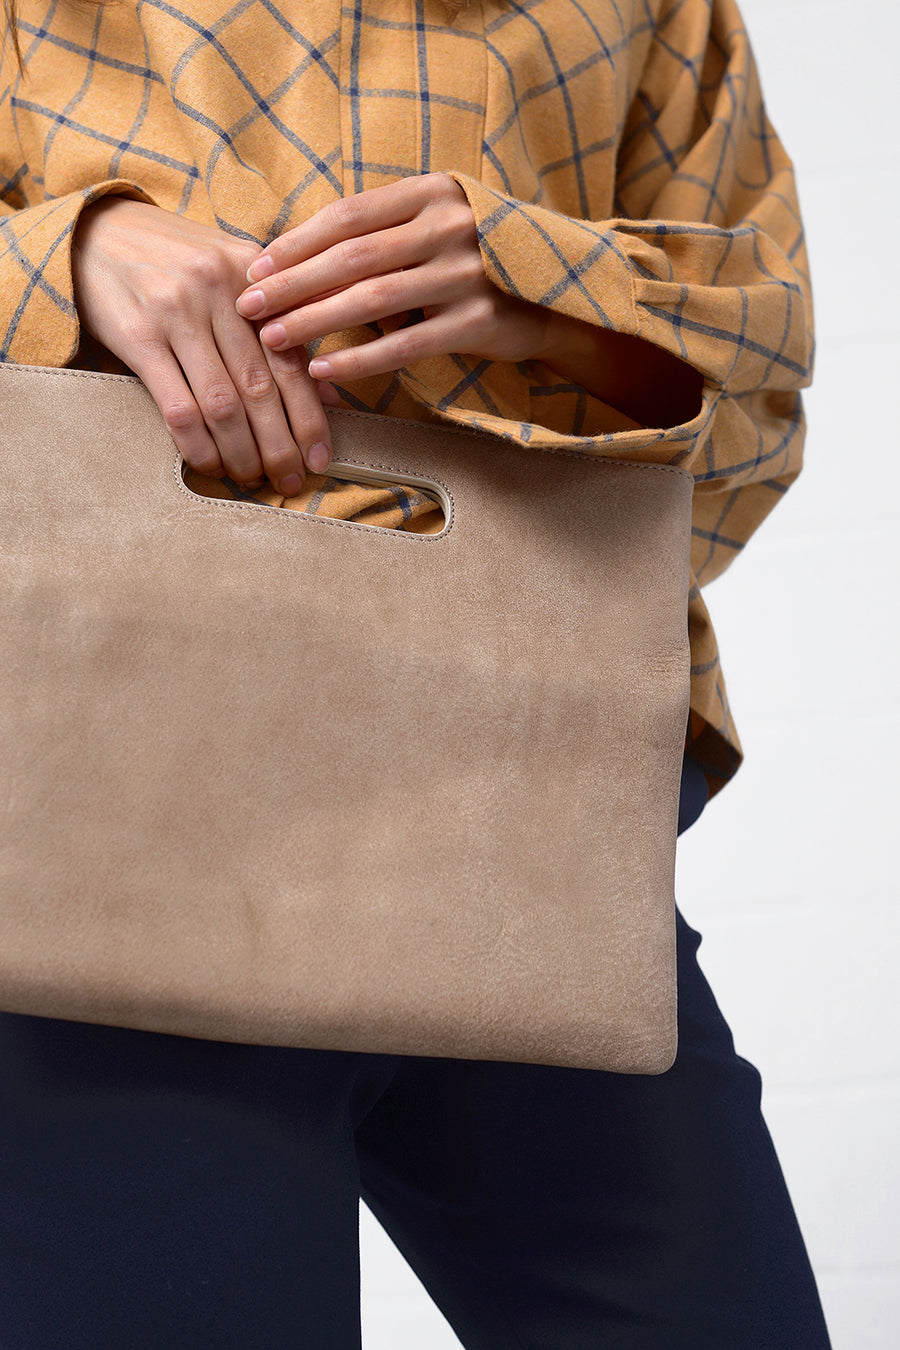 Borino Bag - stone